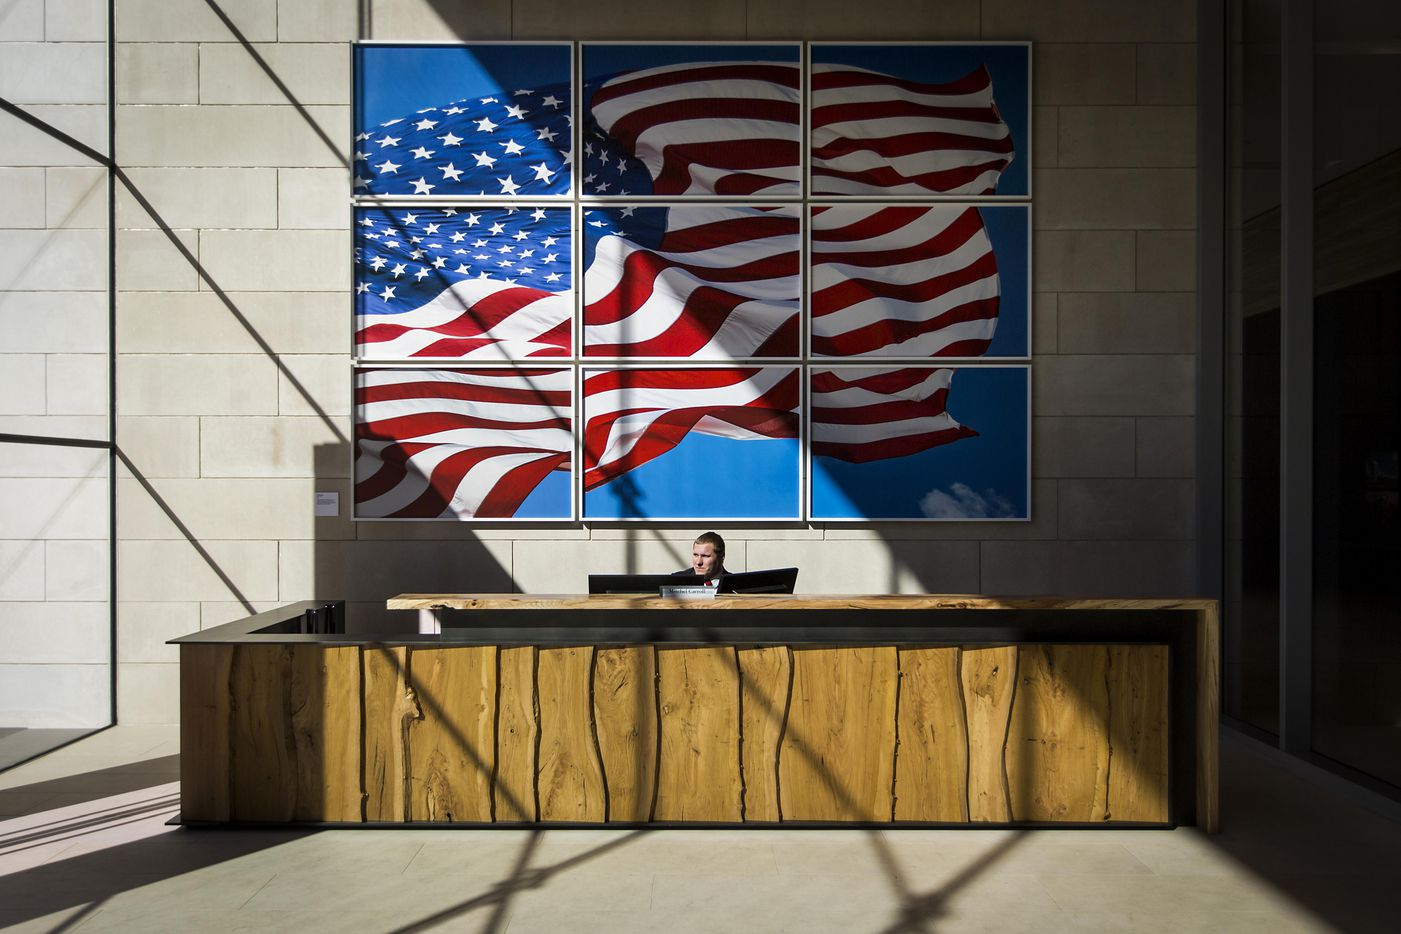 Security guard Mitchel Carroll works at the front desk of the new headquarters for the Perot companies.